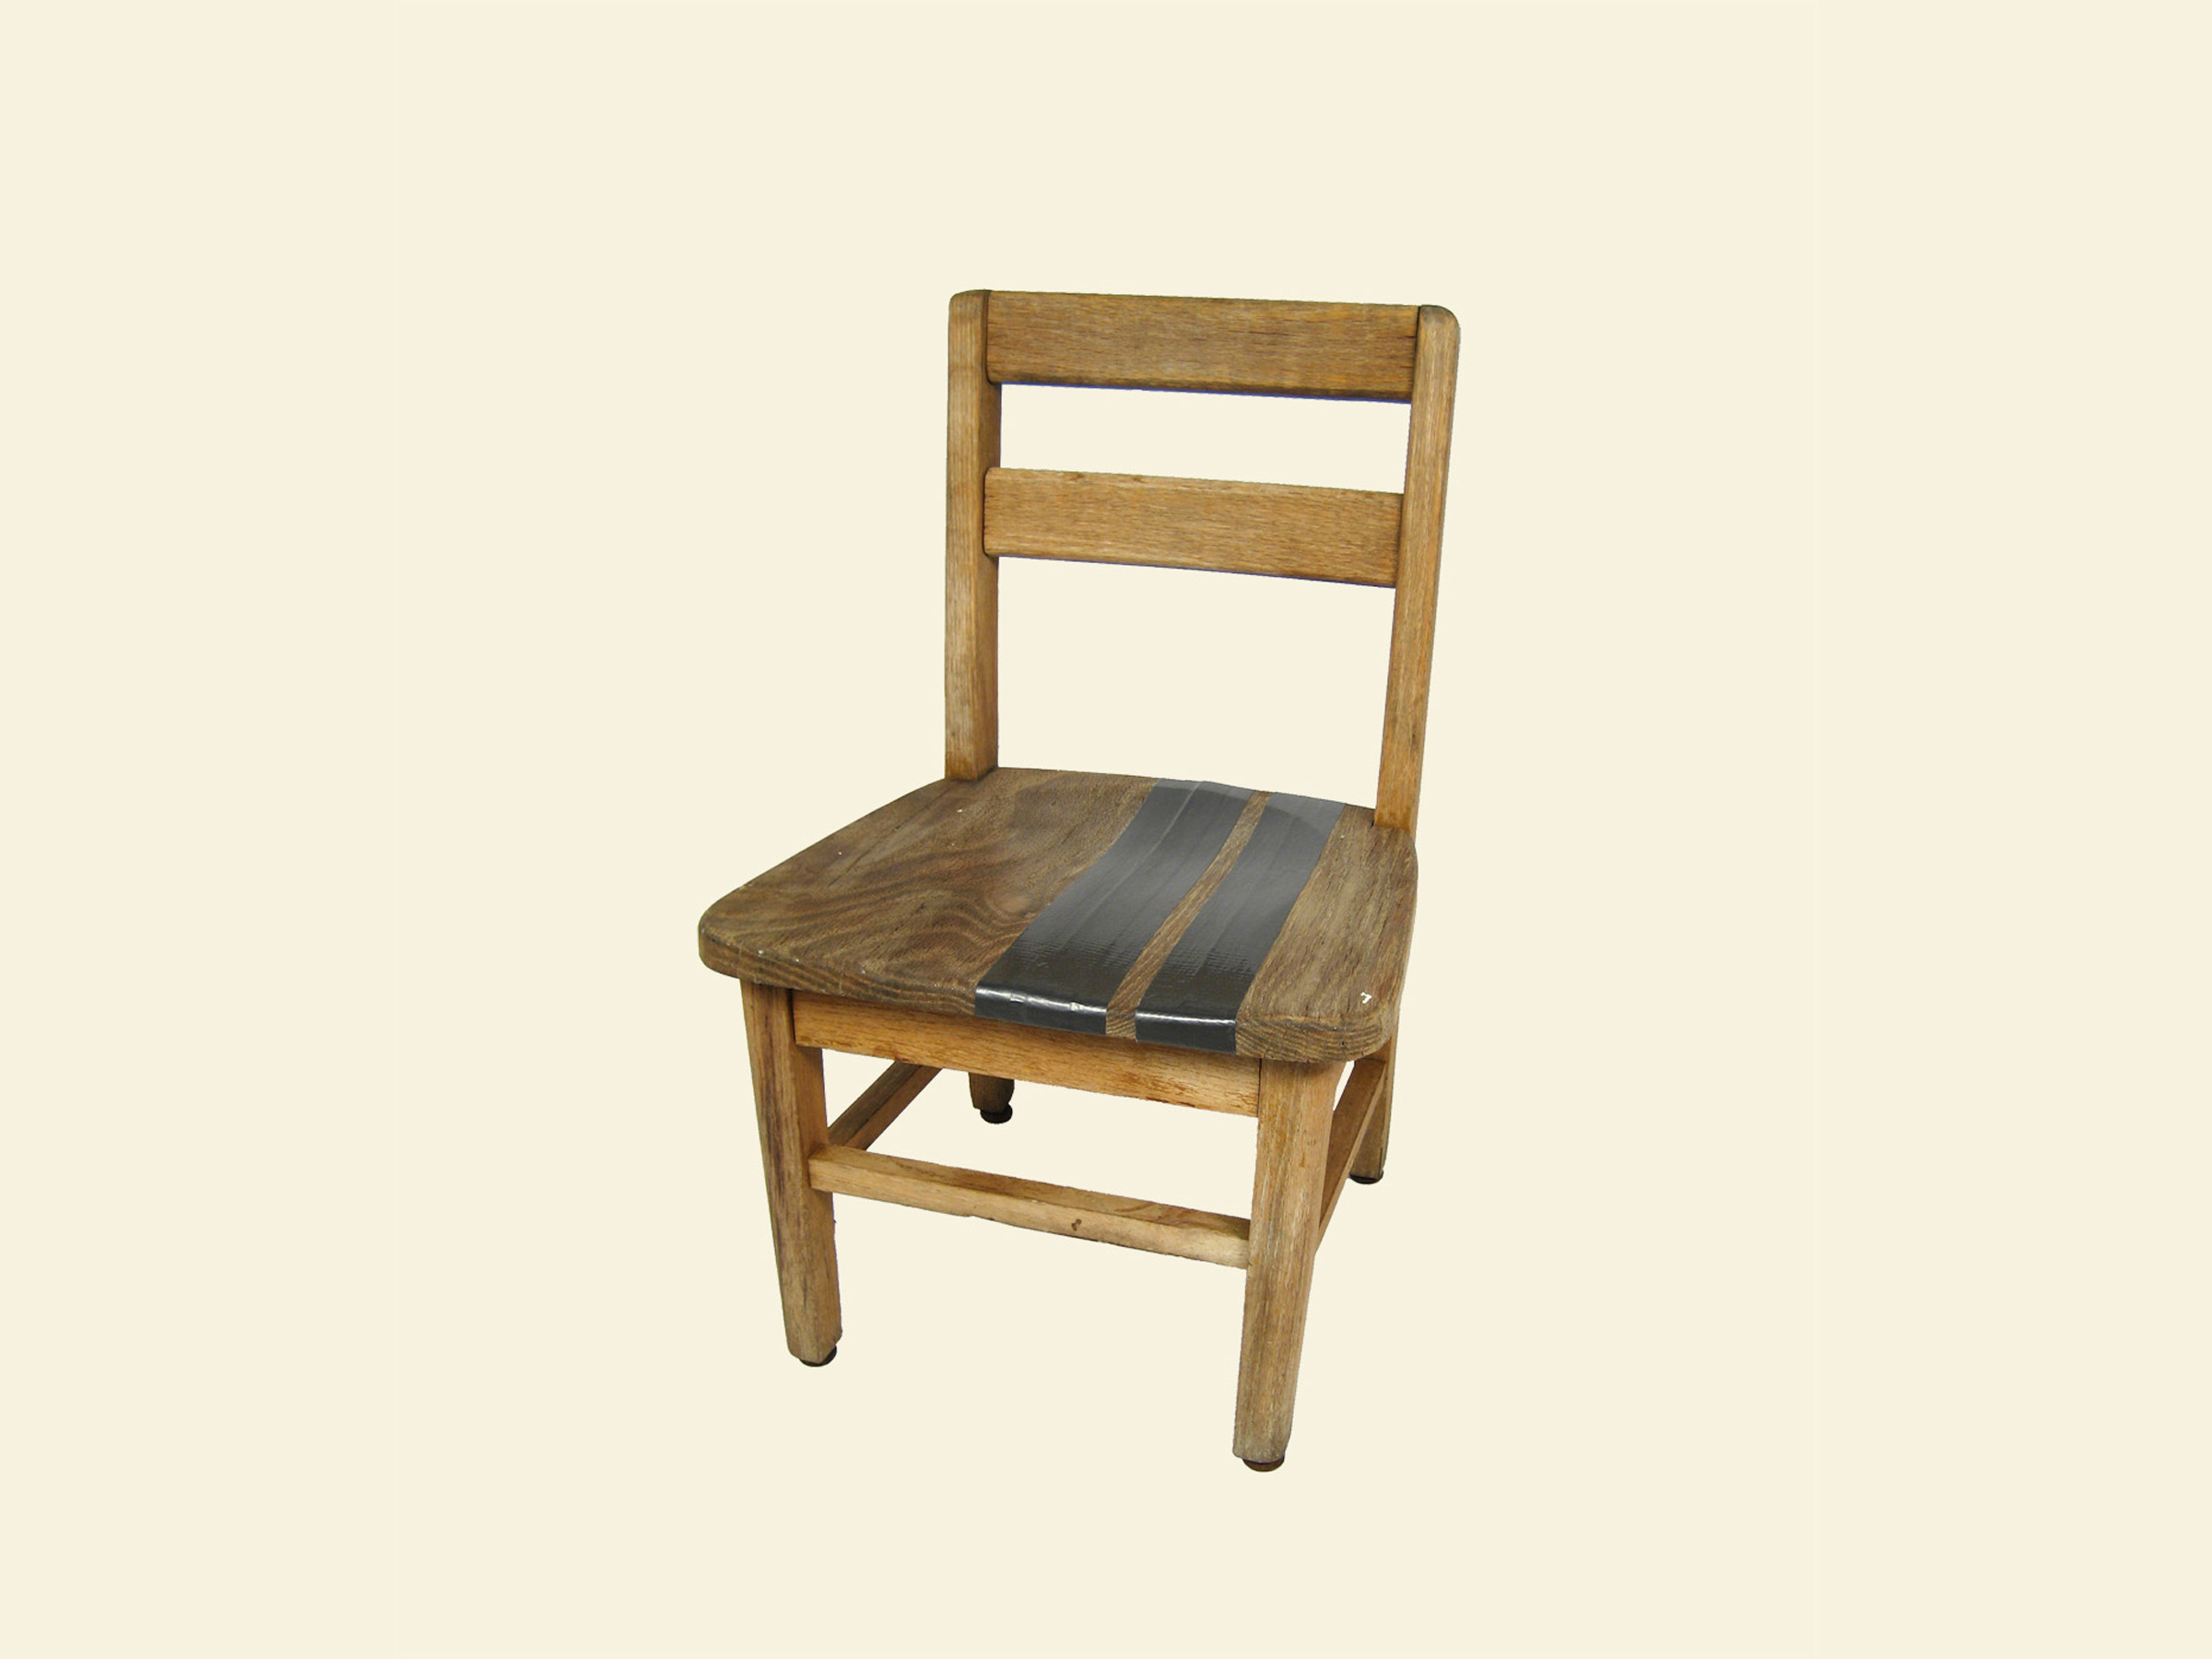 ffixed chair.jpg